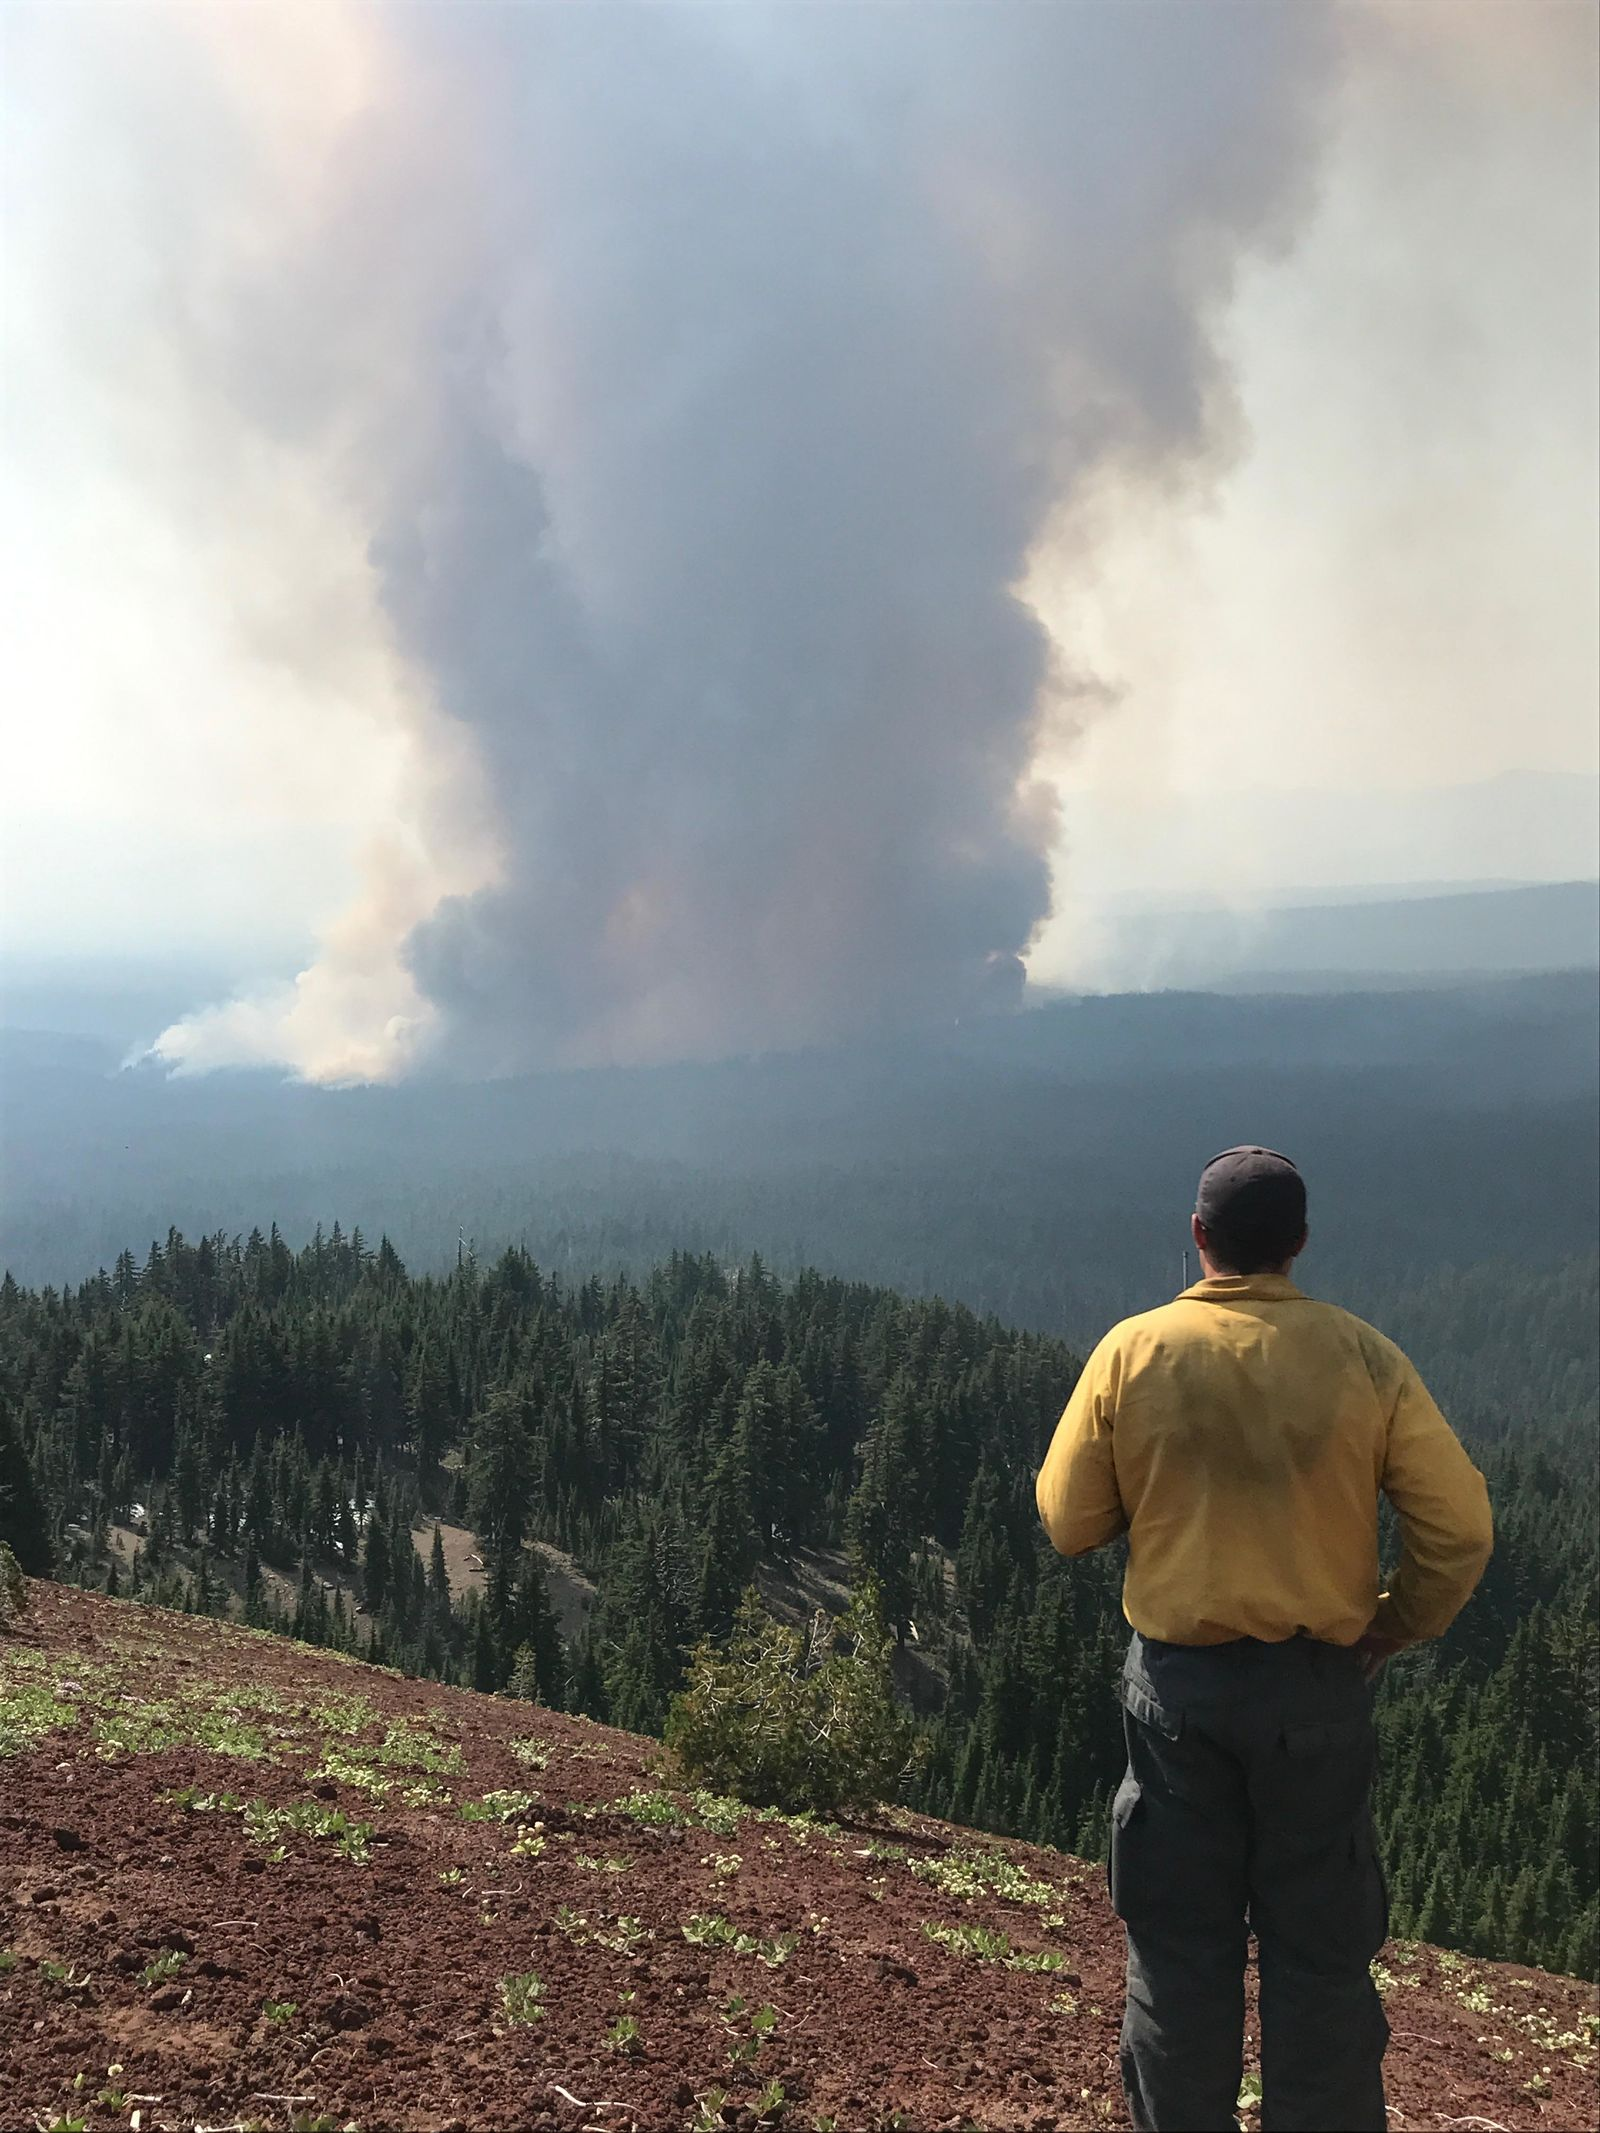 A Field Observer watches the Spruce Lake Fire near the Watchman Lookout along the west rim of Crater Lake (NW IMT 13 Photo by Robert Scoggin)